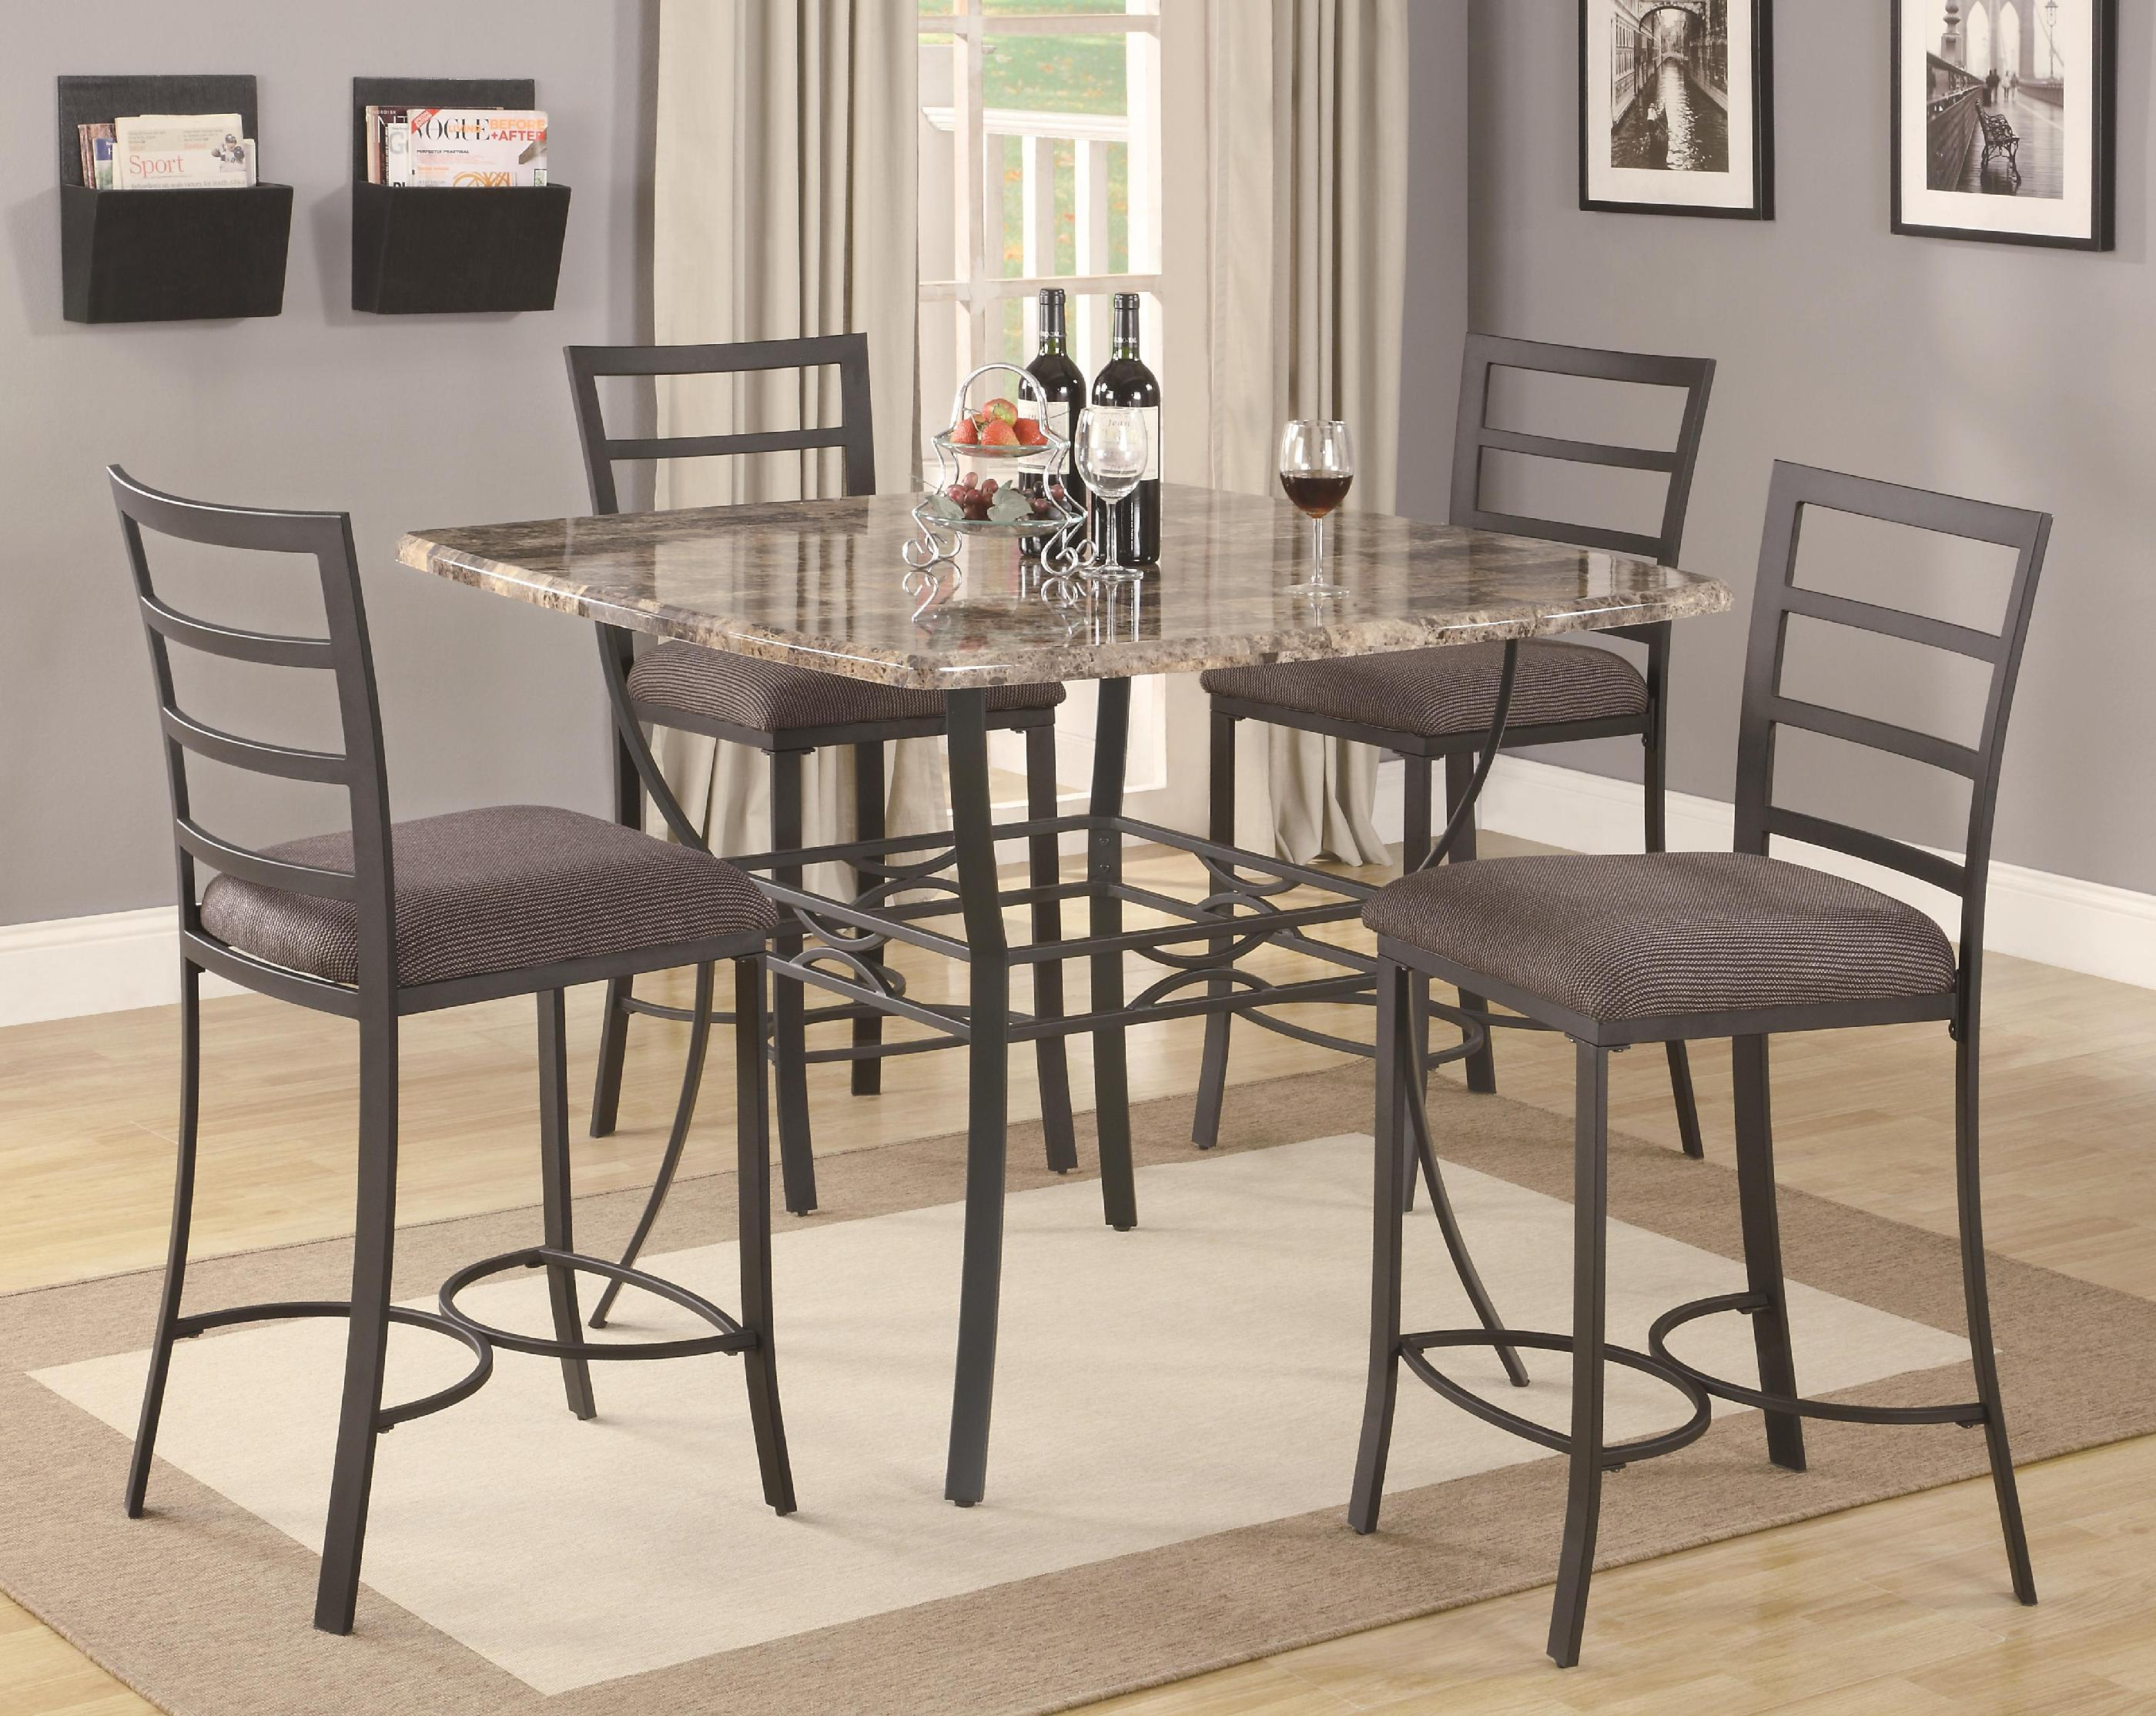 Garden Outdoor Elegant Bistro Table And Chairs For Home Furniture